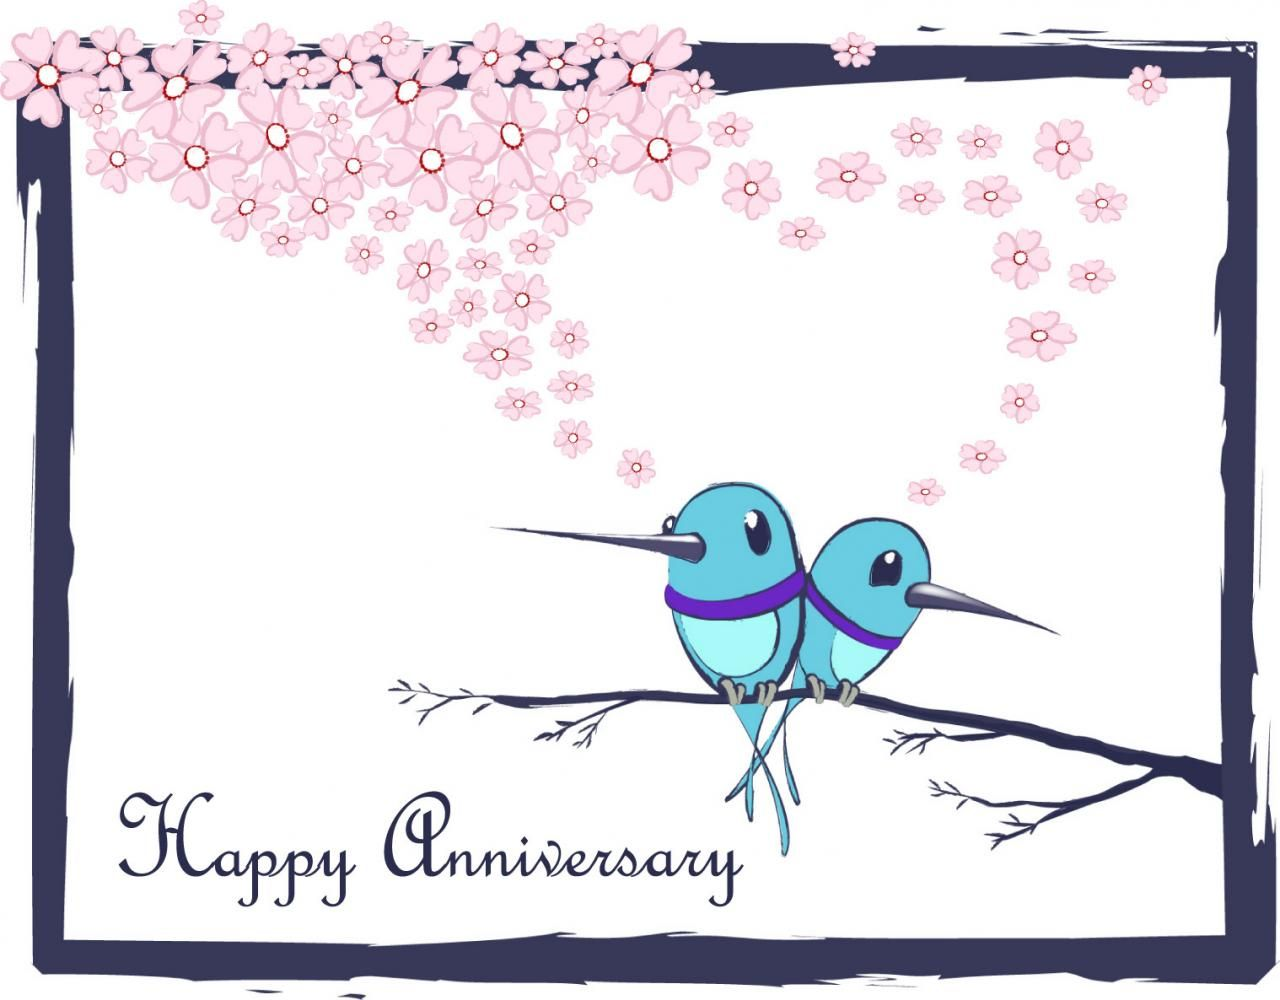 Happy Happy Happy Anniversary | birdingbloomer replied on 07-22-2011 ...